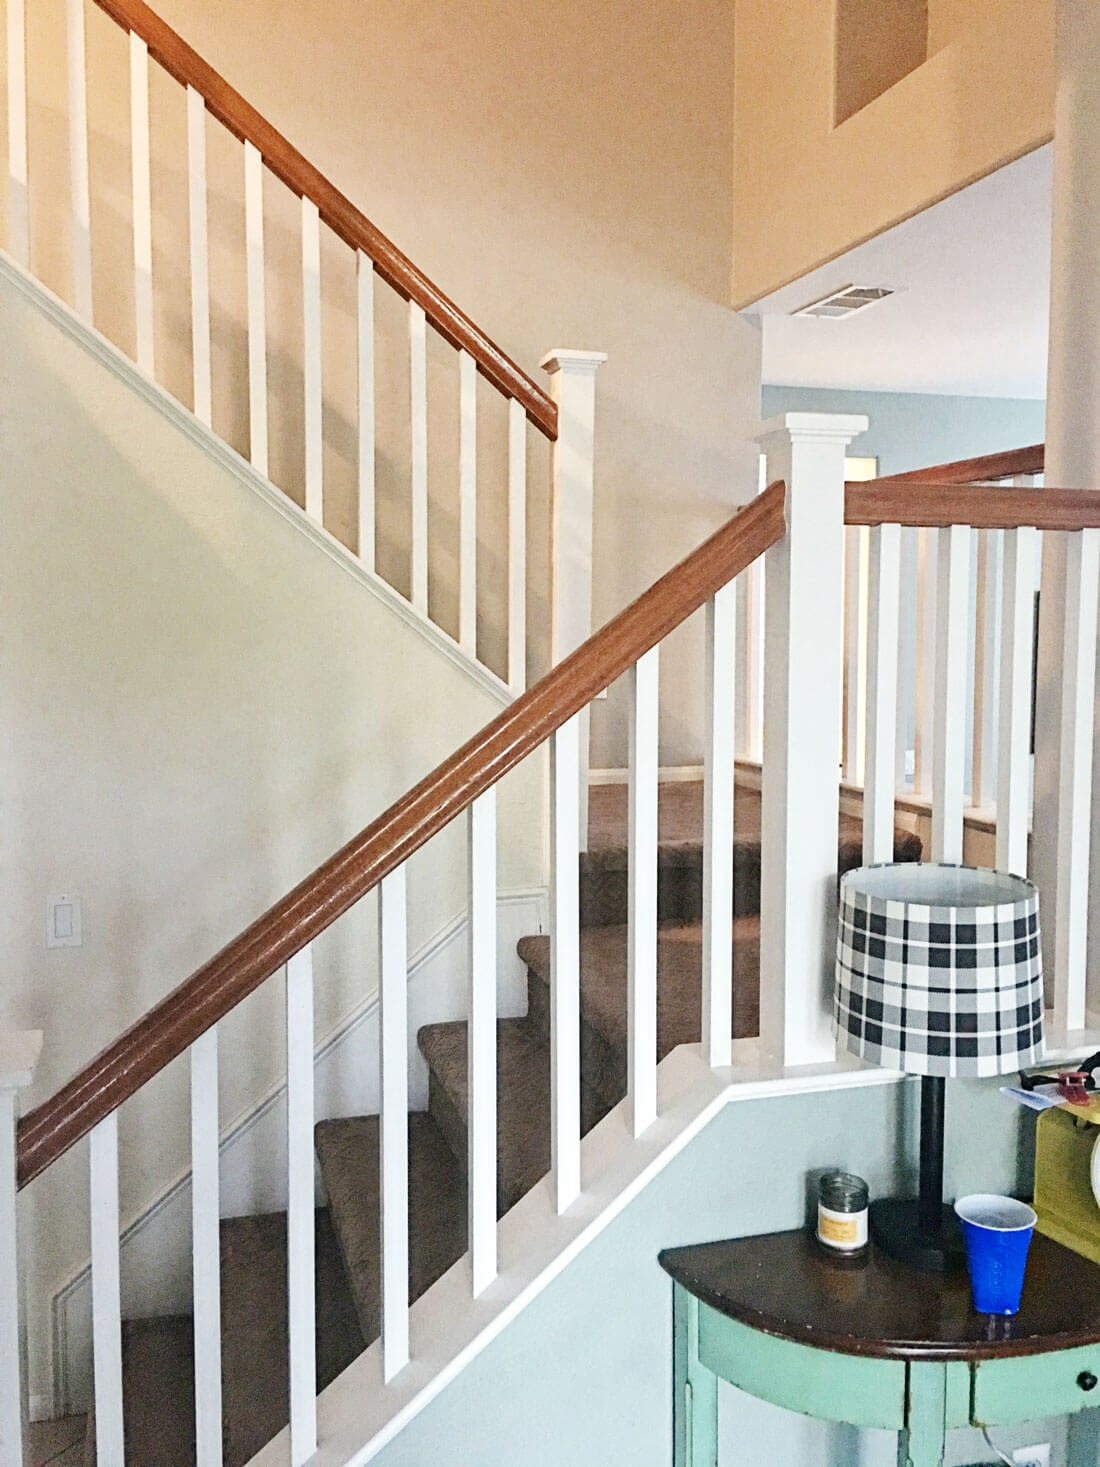 How To Paint Your Stair Railing And Banister Black From 30Daysblog | Banister Rail And Spindles | Component | Interior | Lj Smith | Newel Post | Porch